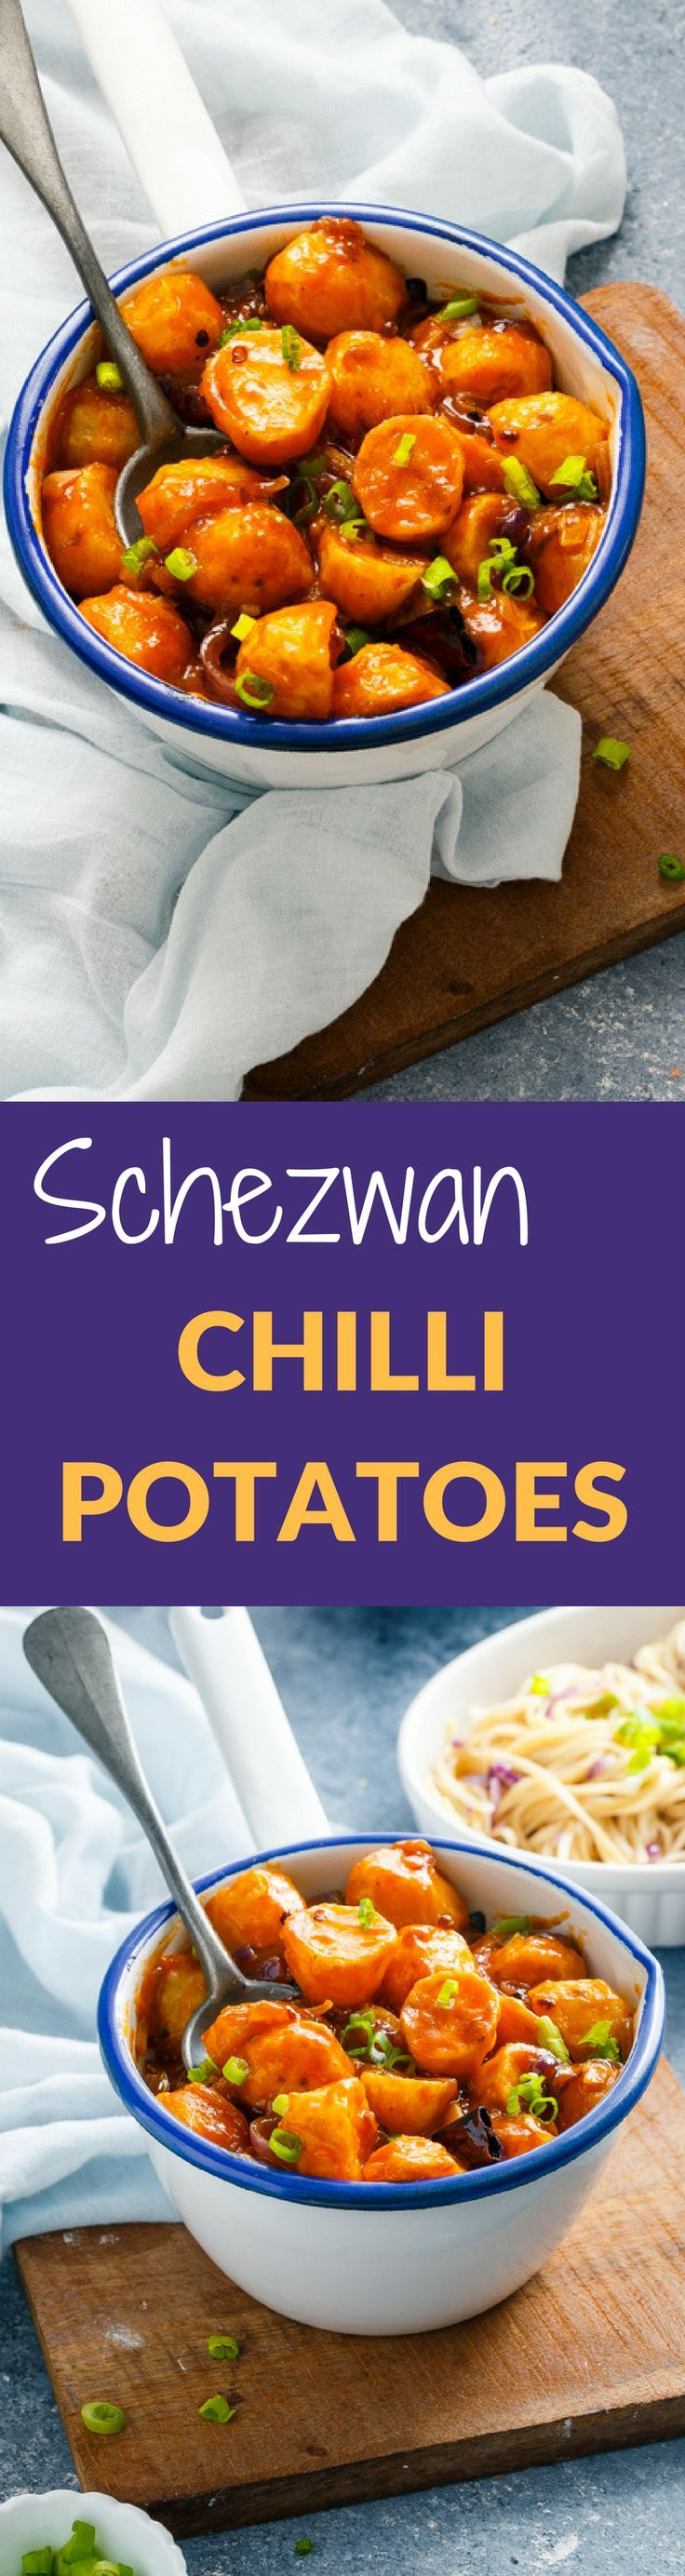 SCHEZWAN CHILLI POTATOES is a popular Indo Chinese Recipe made with Crispy Fried Potatoes , Sichuan Peppers, Soya Sauce and Schezwan Sauce . Its Slightly Sweet, Hot , Tangy and pairs well with Garlic Noodles or Fried Rice.